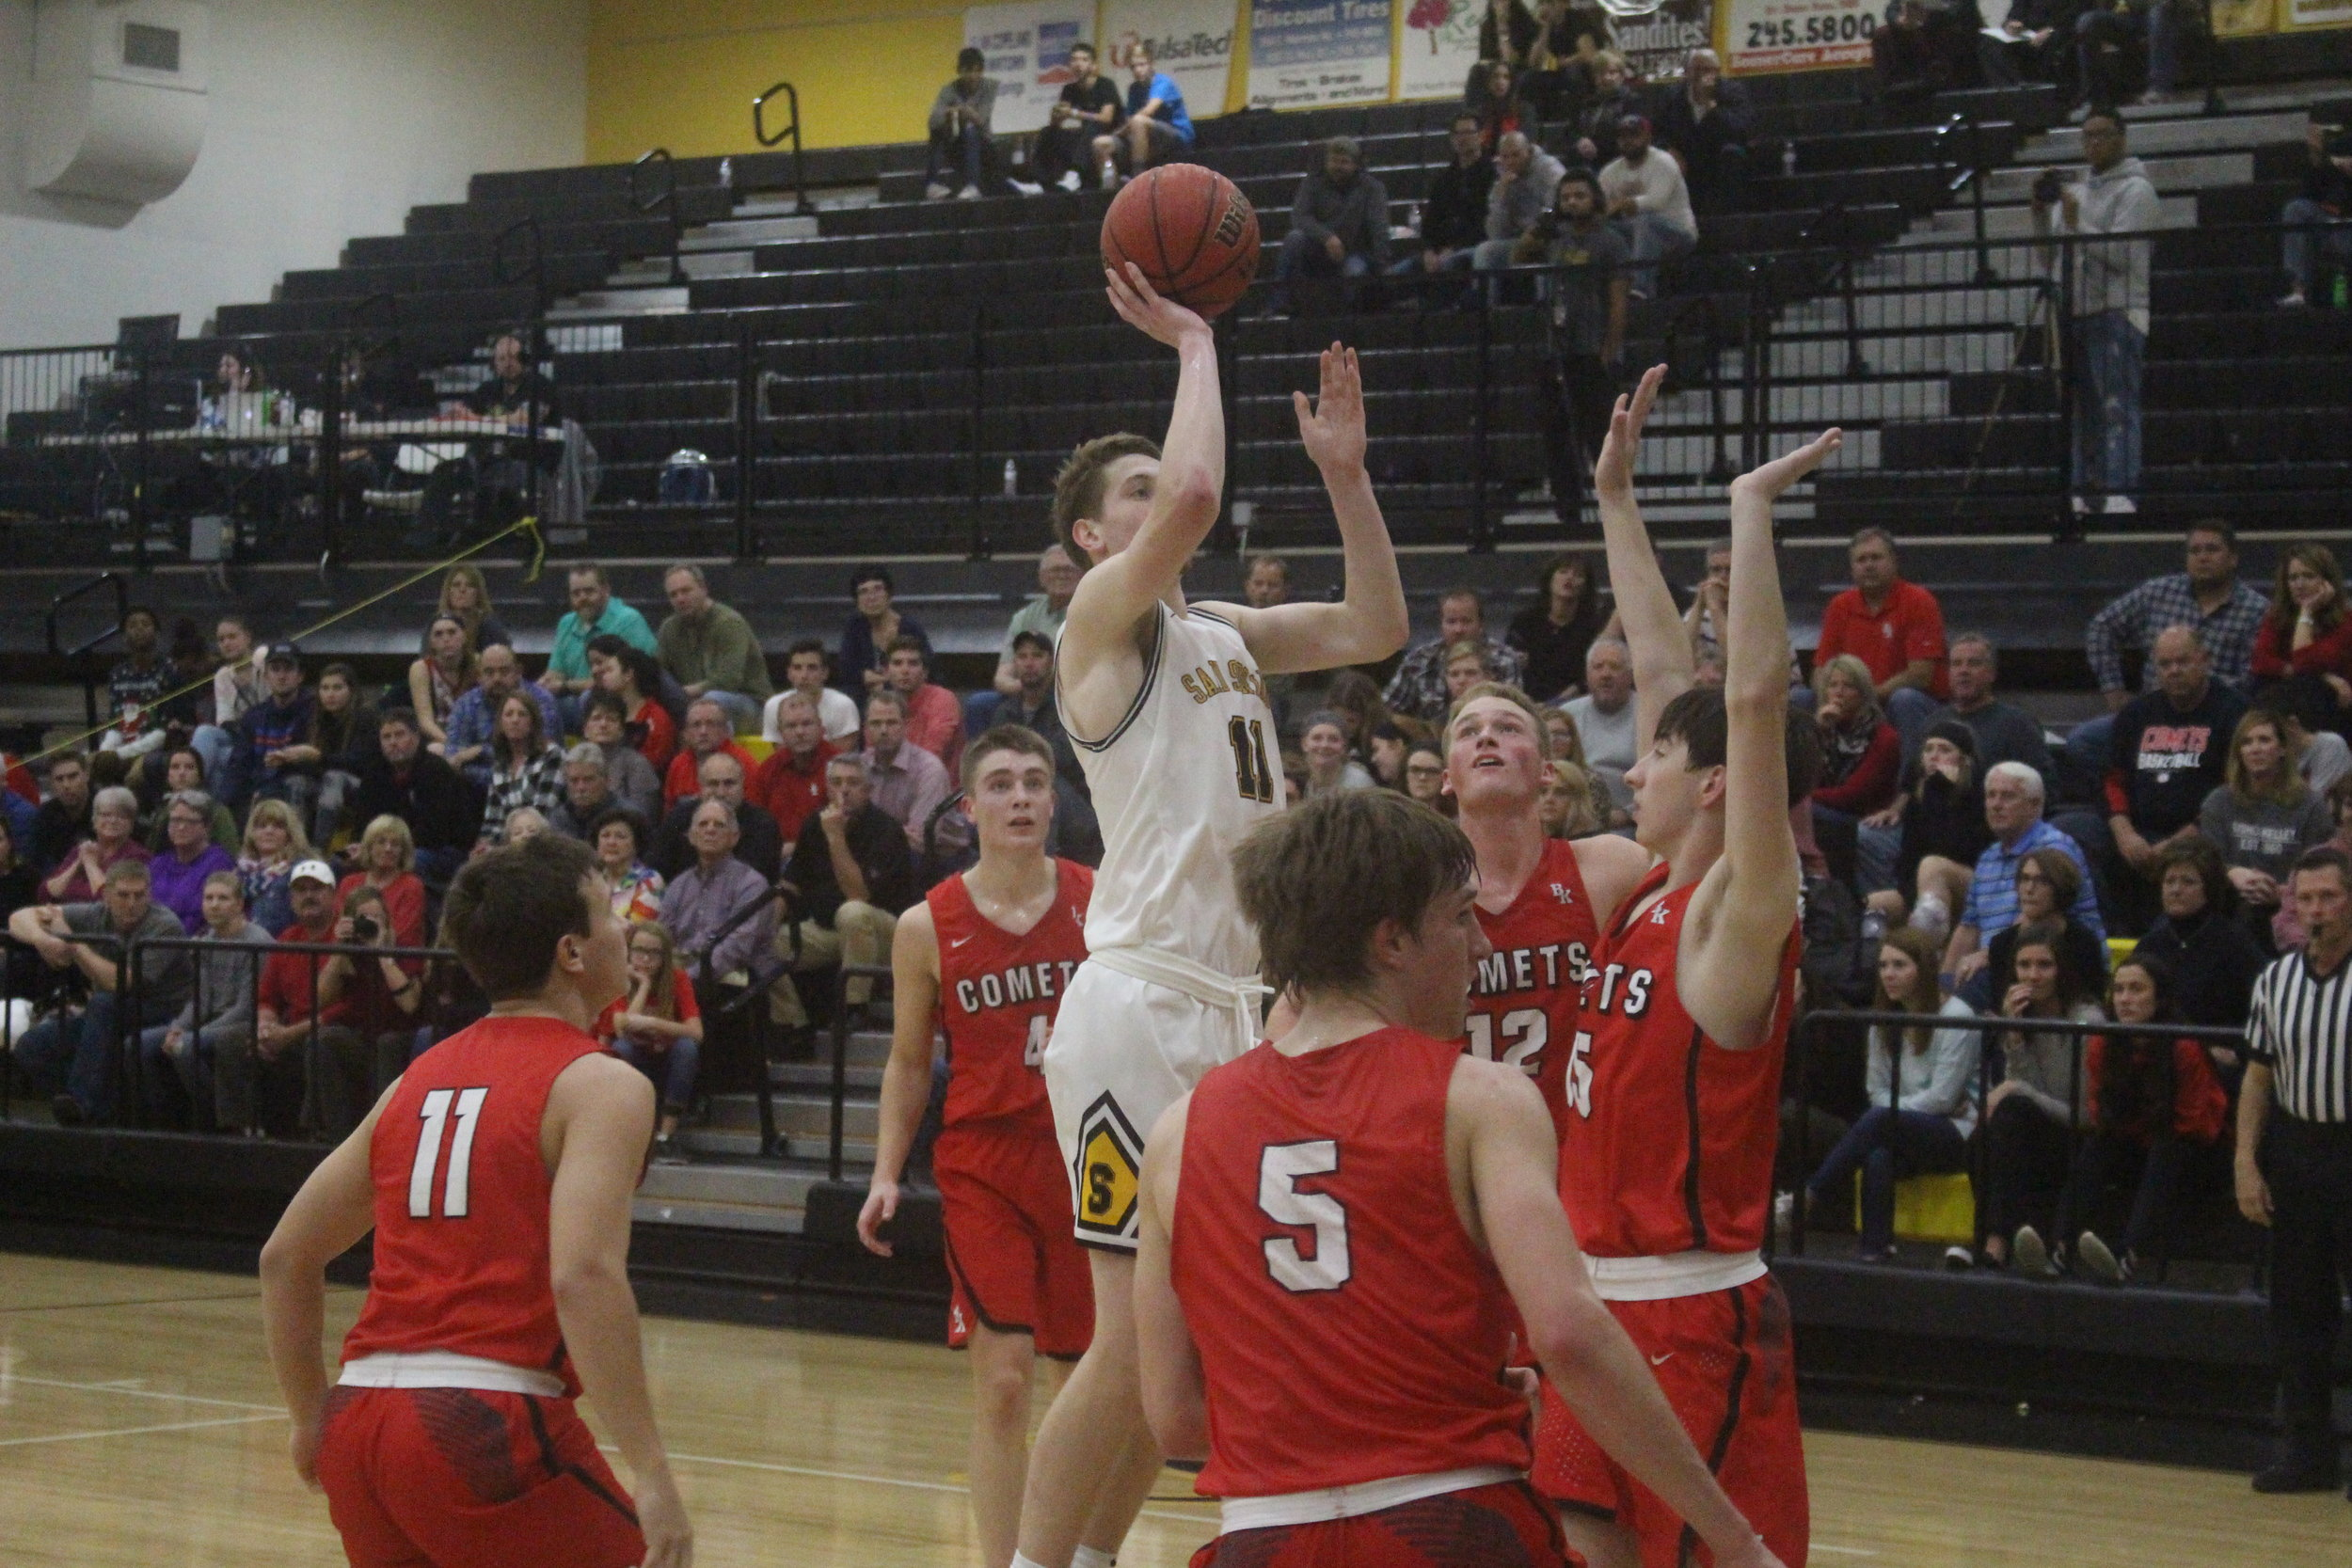 Colt Savage led all scorers with 21 points in a 45-44 victory over Bishop Kelley. (Photo: Scott Emigh).